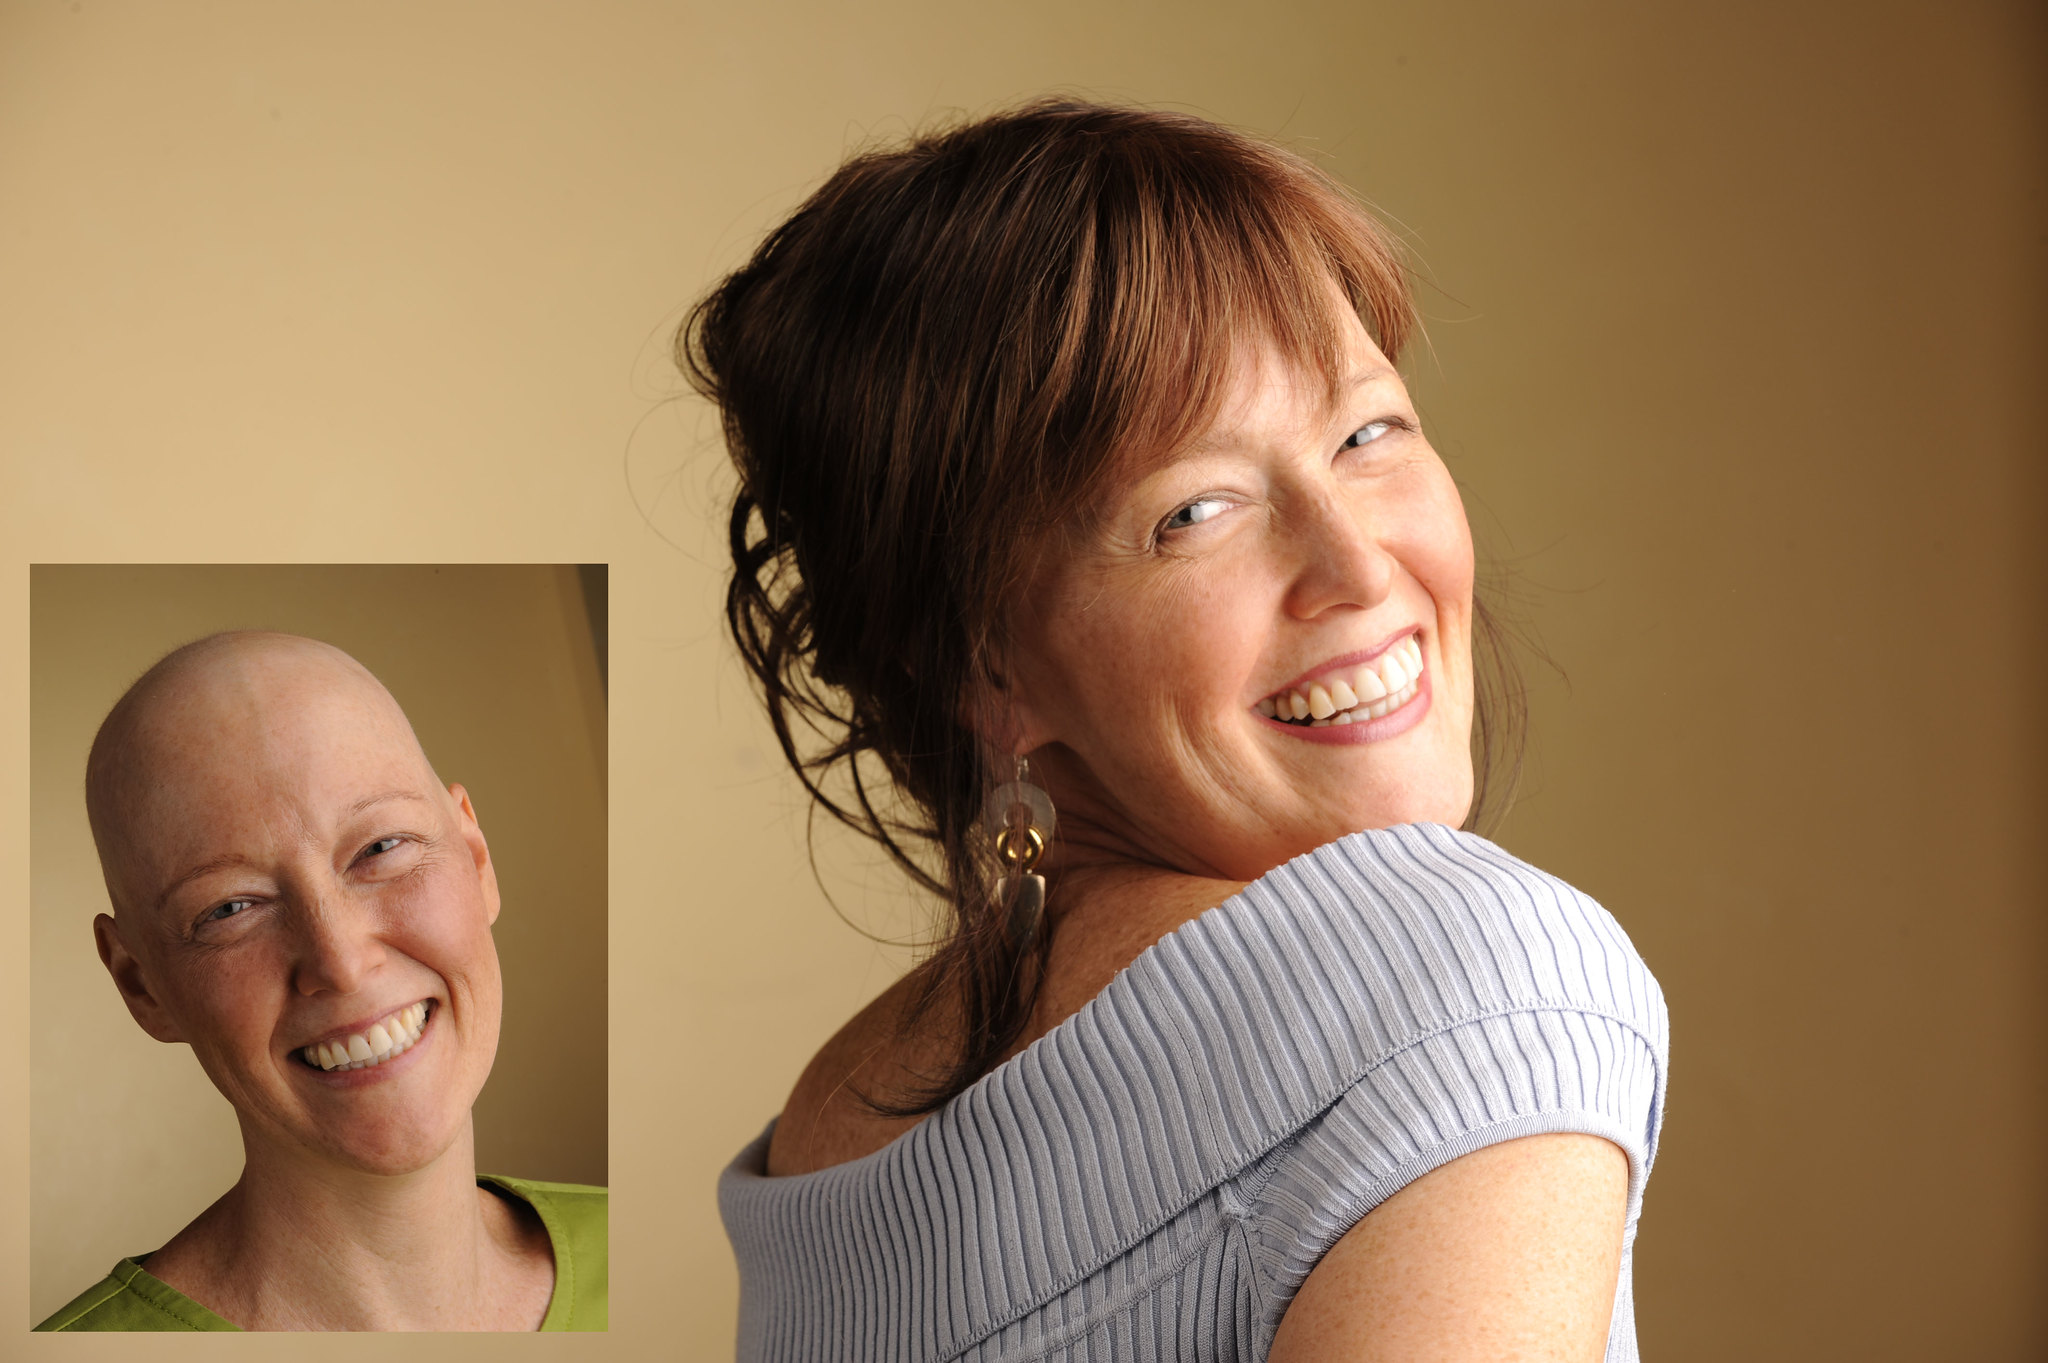 free haircuts for cancer patients free haircuts for cancer patients look feel better flickr 3722